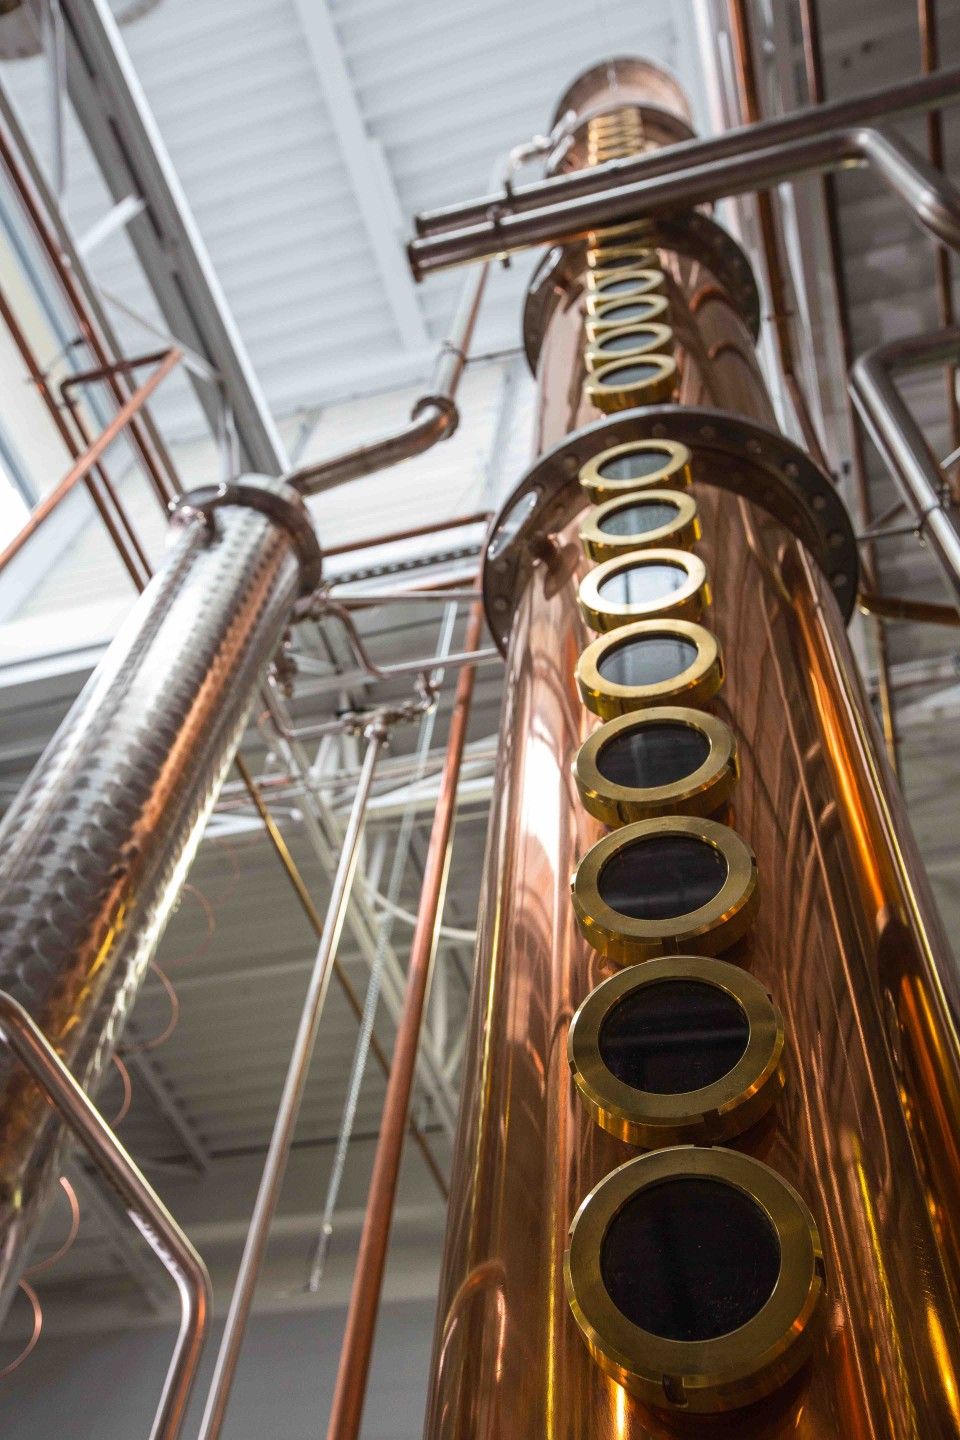 Topo Organic Spirits in North Carolina makes vodka, gin and whiskey from local ingredients.